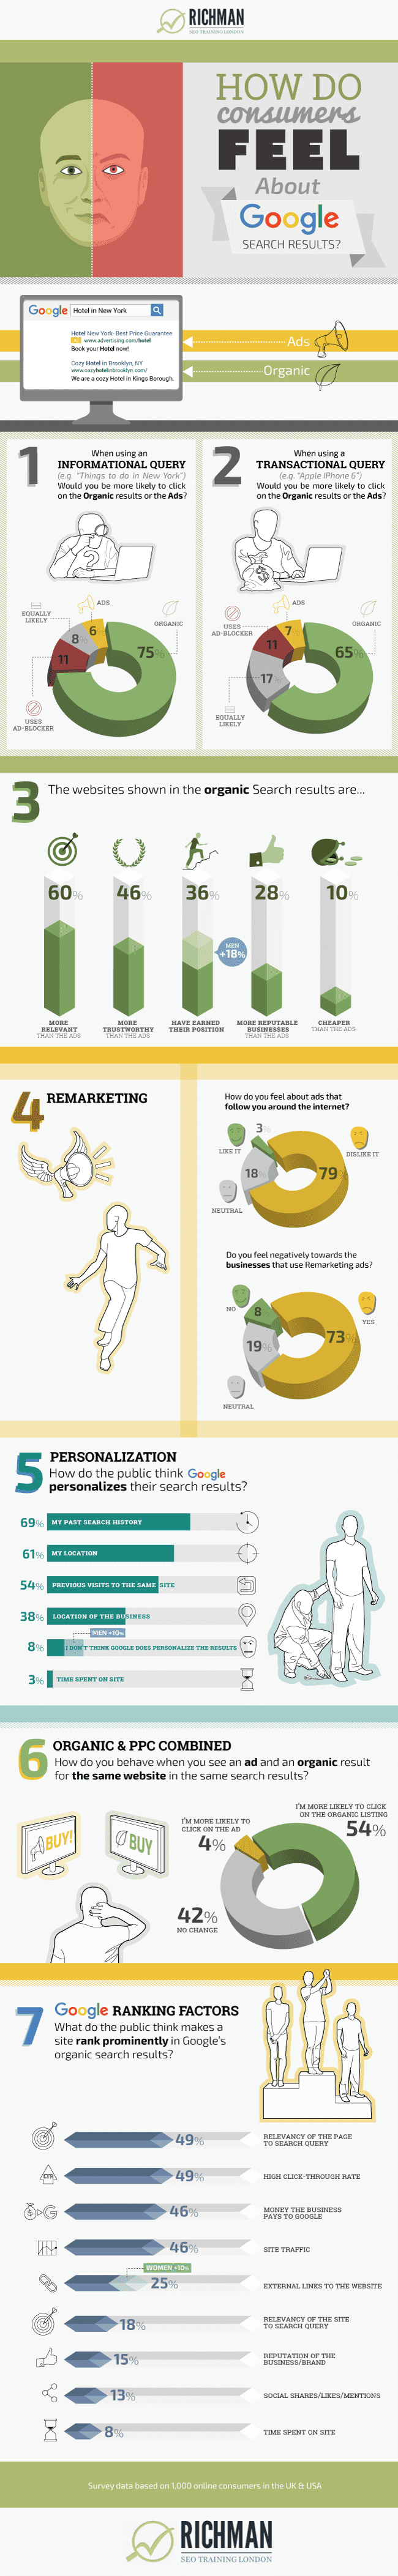 Infographic: 7 Revealing Insights into how Consumers feel about Search - An Infographic from